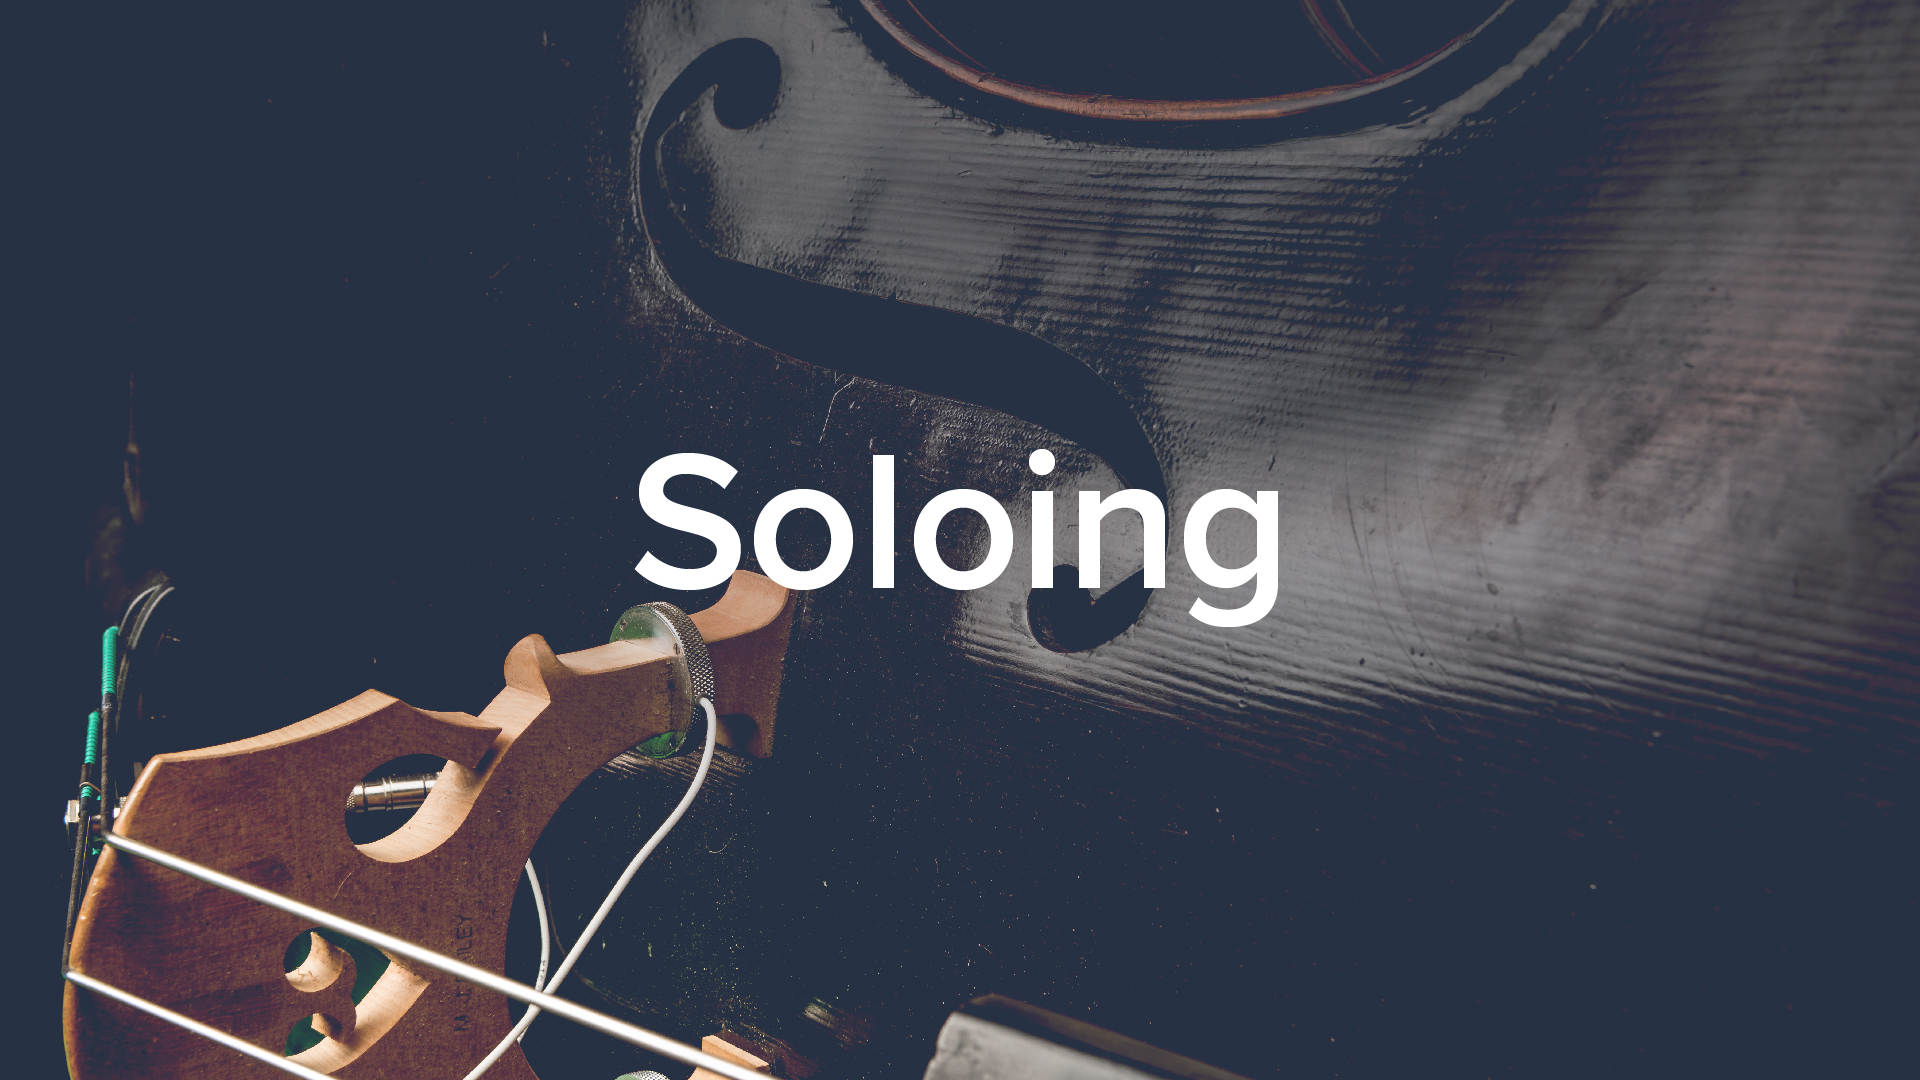 Soloing - Geoff Chalmers